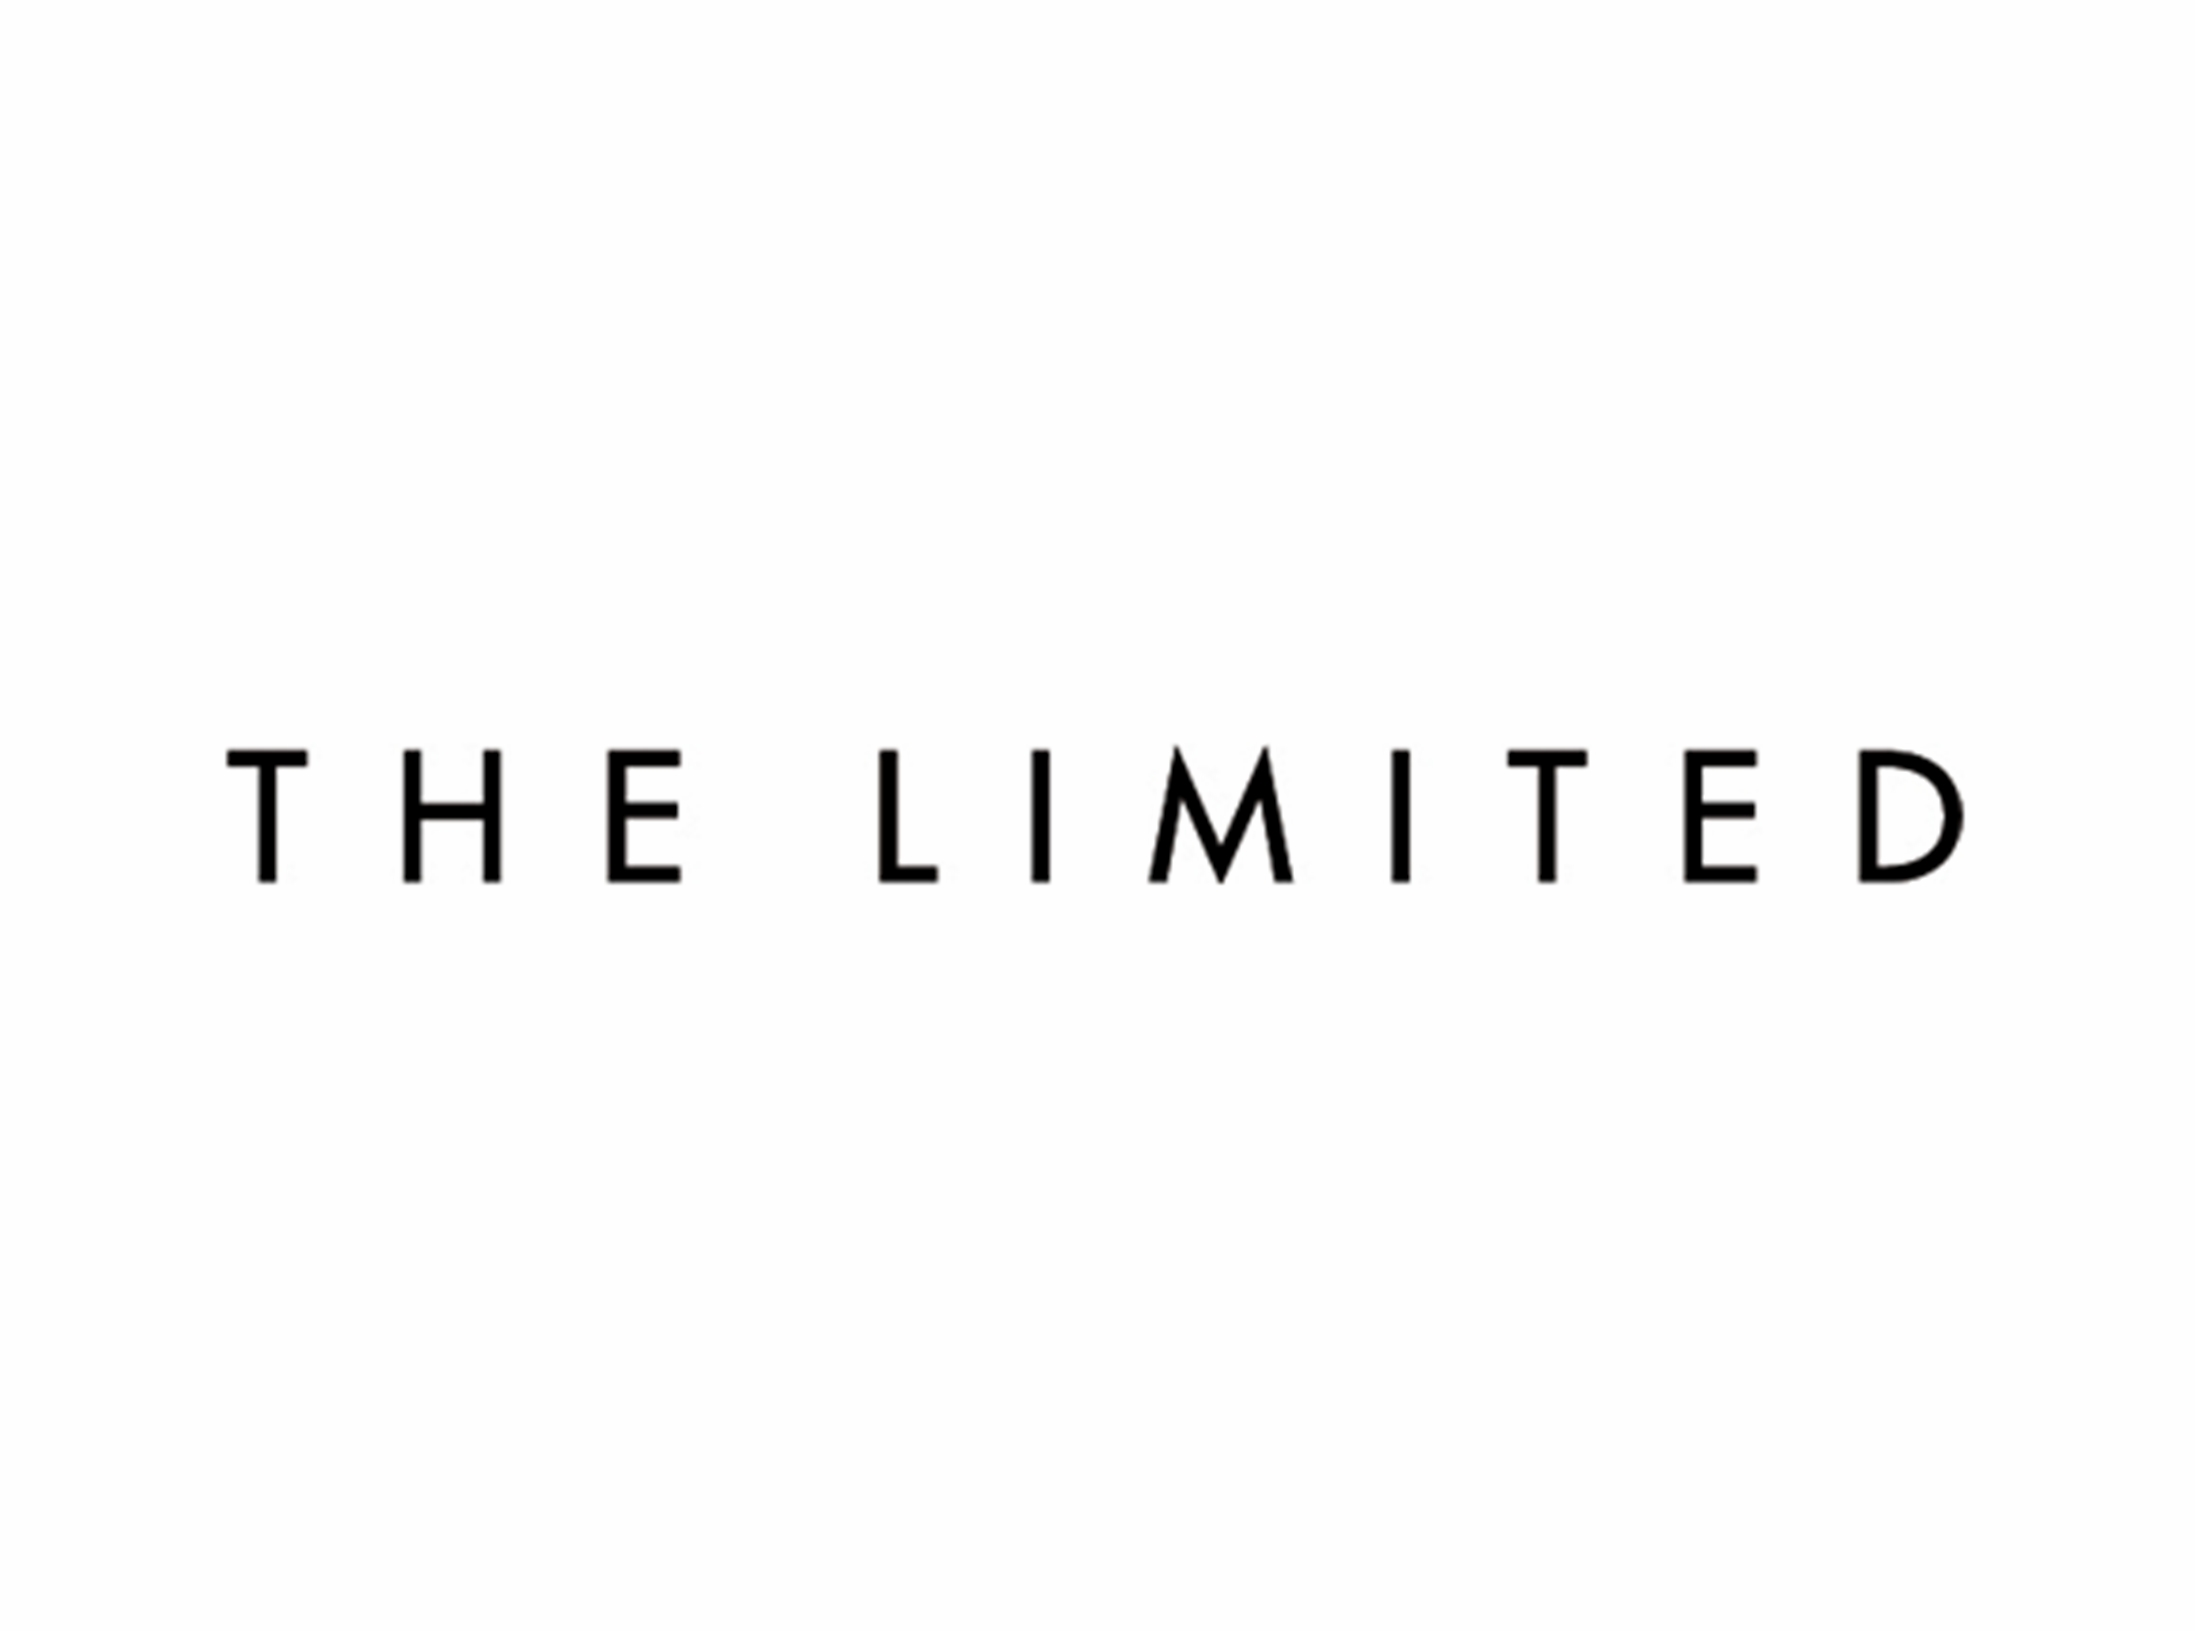 The Limited. K likes. Welcome to the official Facebook page of The Limited!